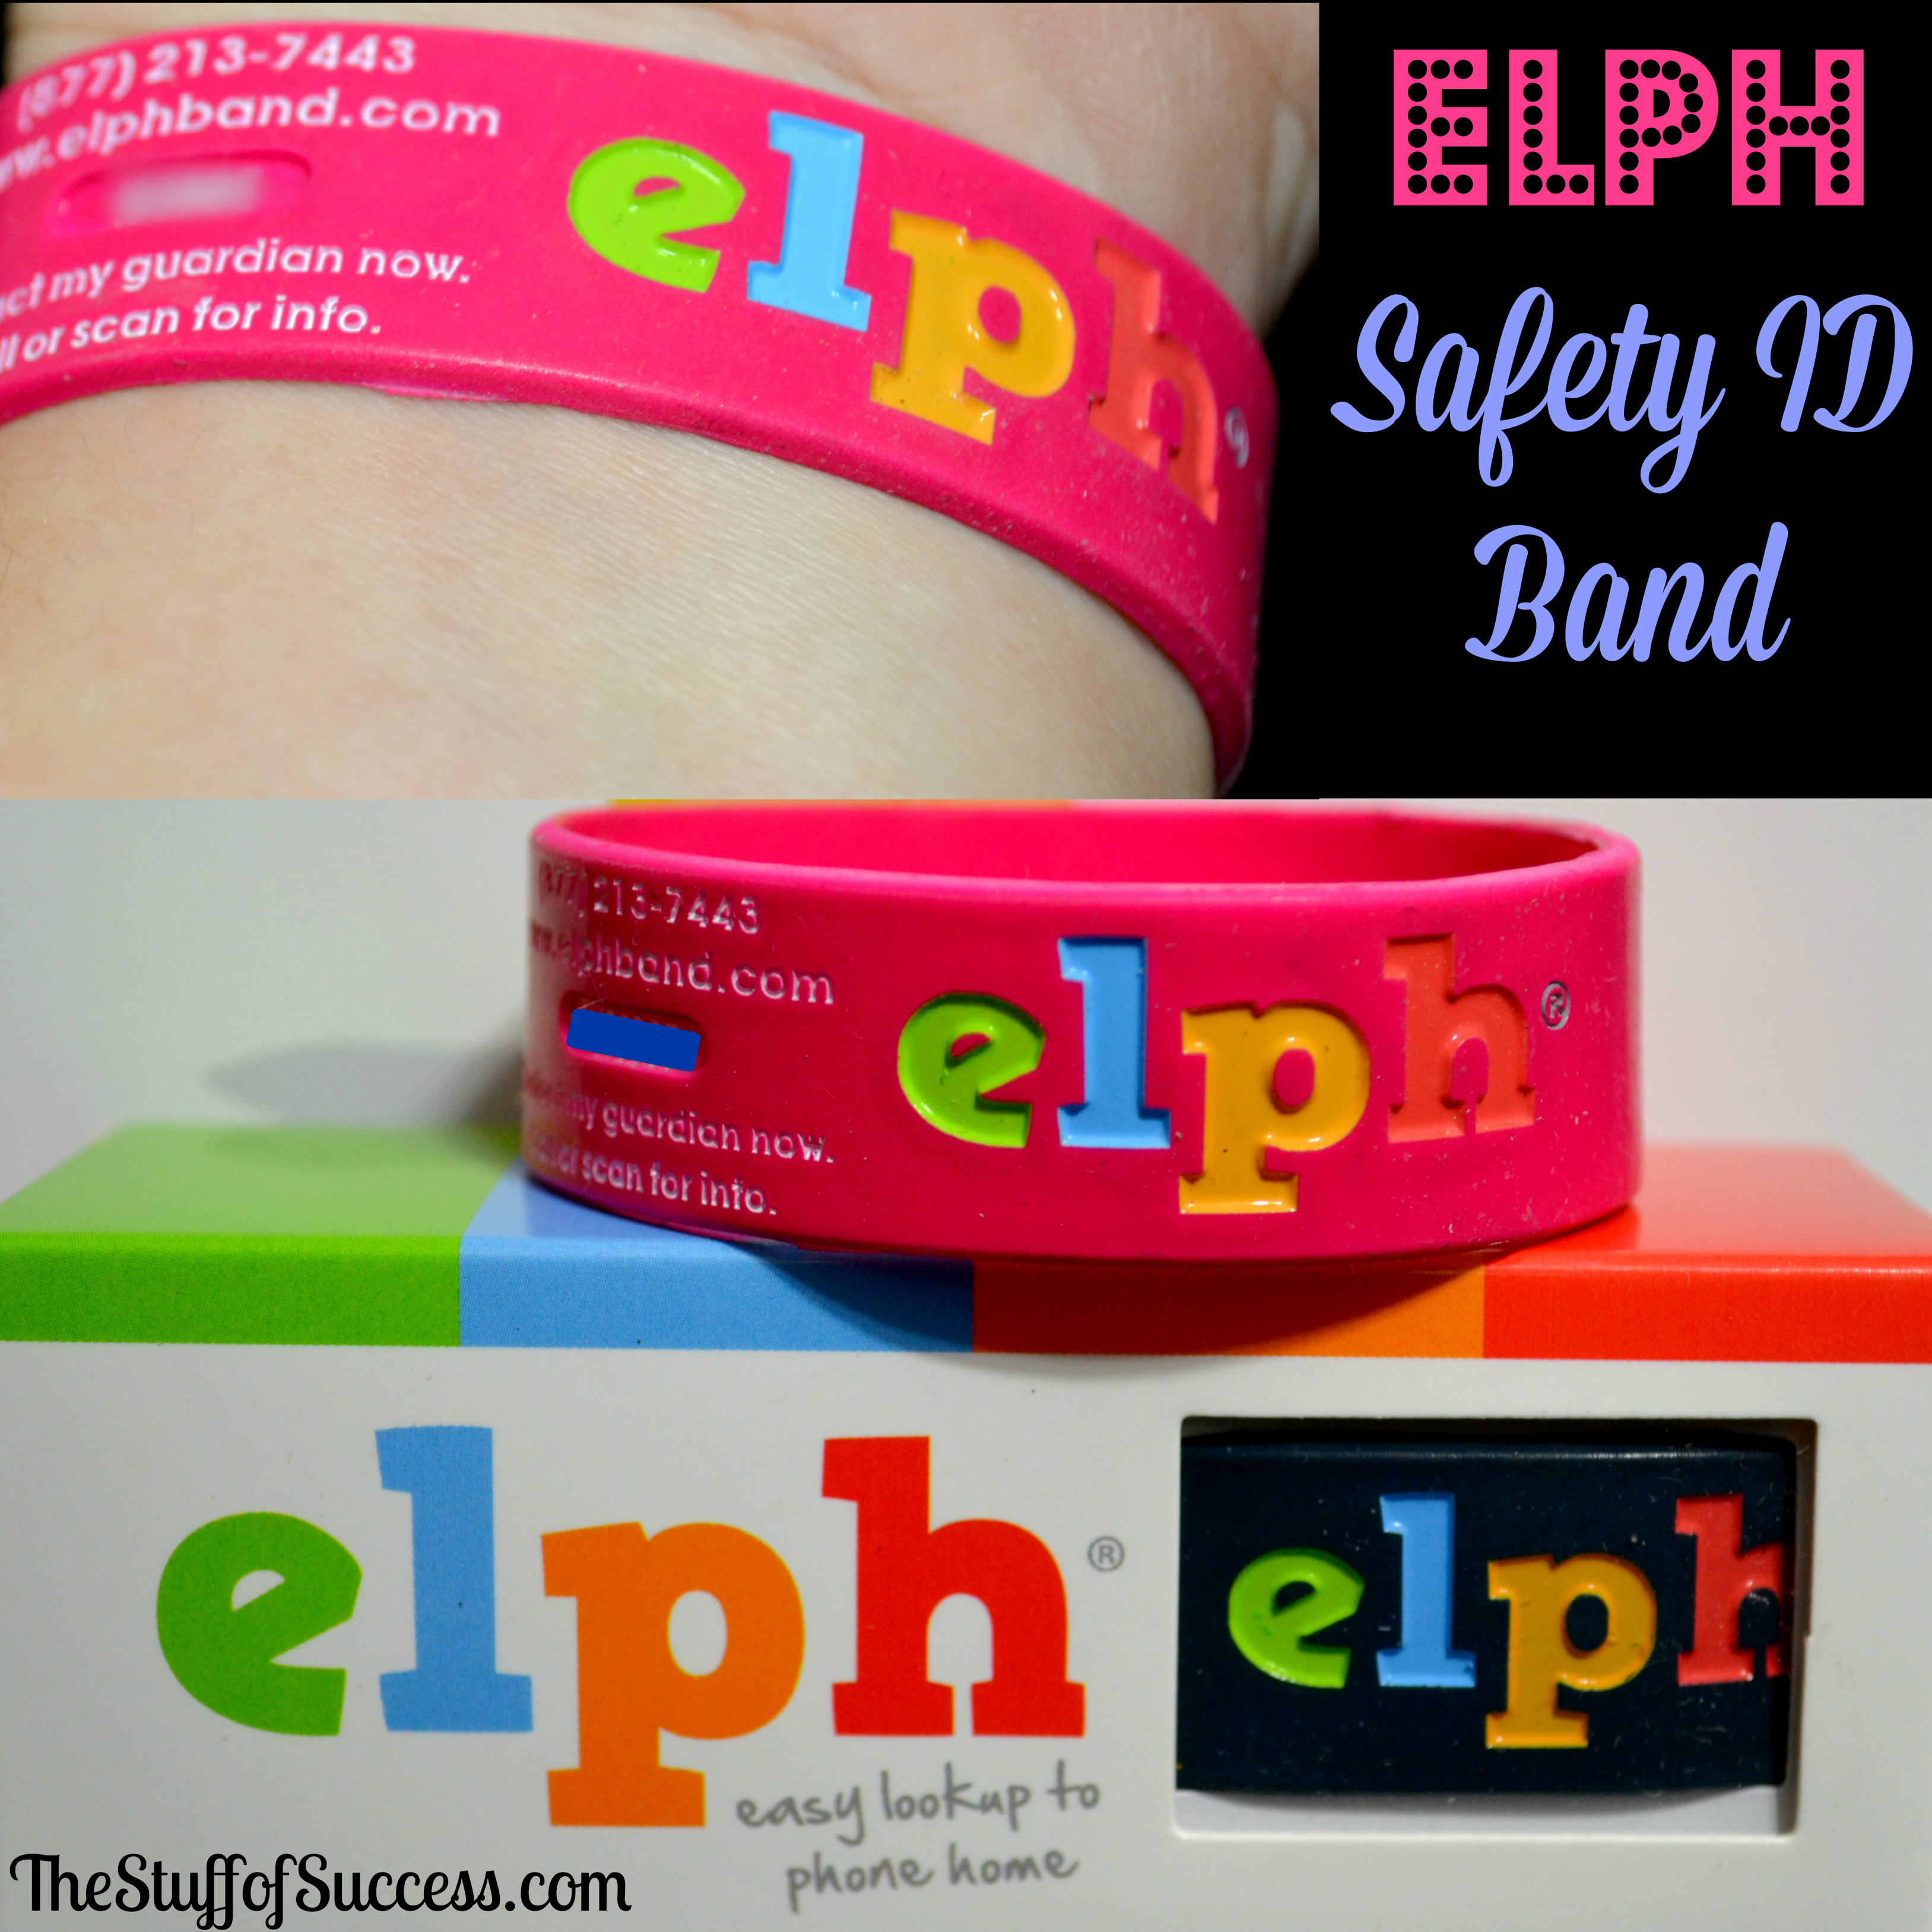 Elph Safety ID Band